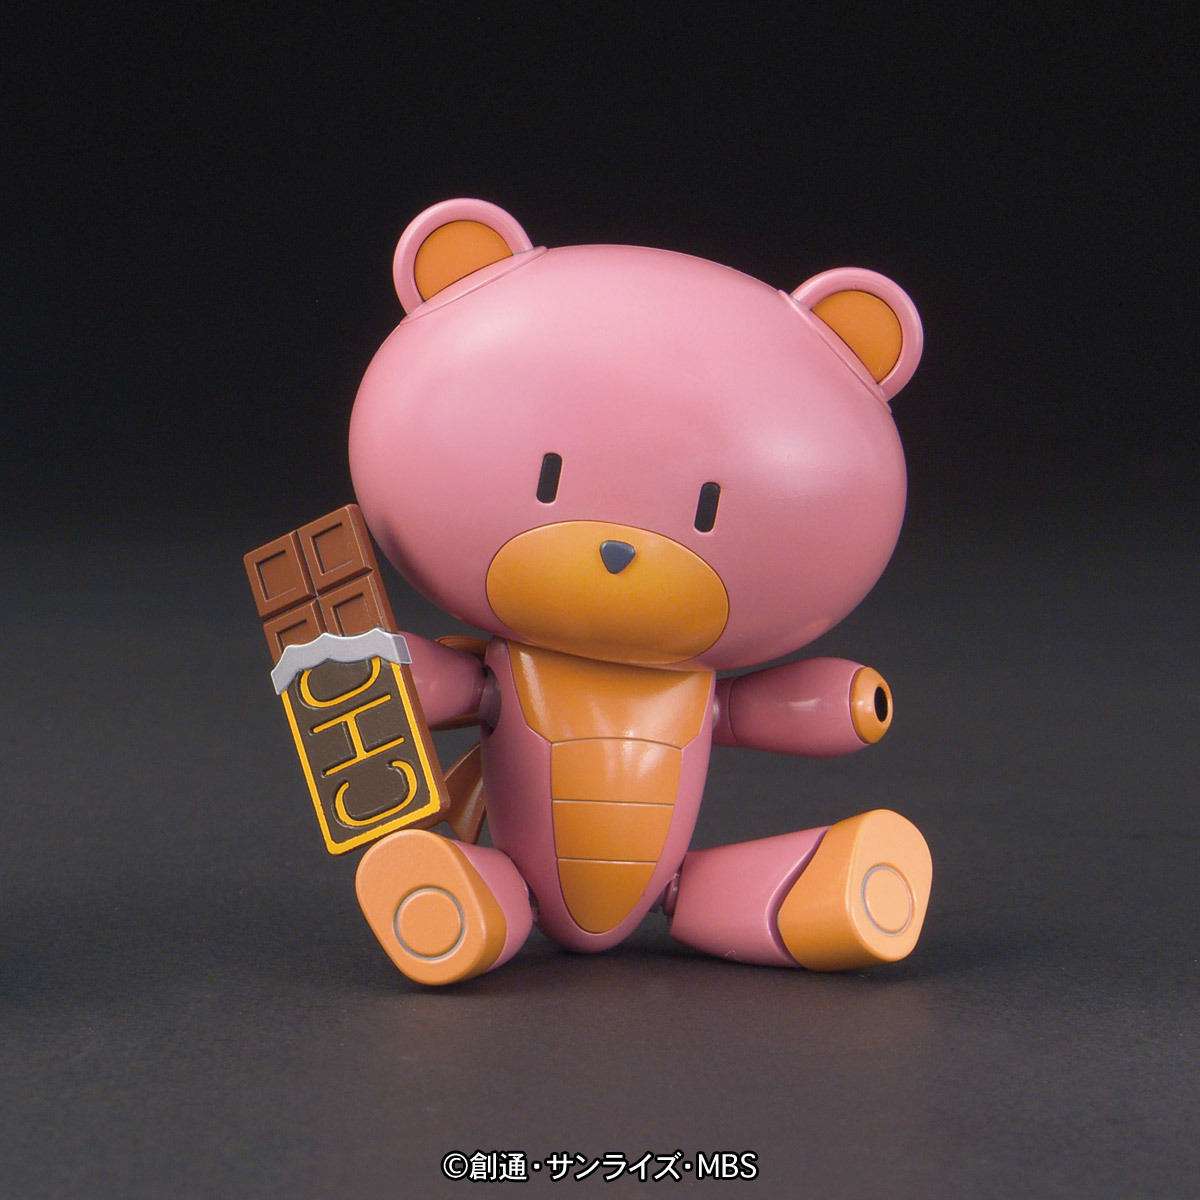 HGPG 1/144 Petitgguy Bittersweet Brown and Chocolate - Release Info